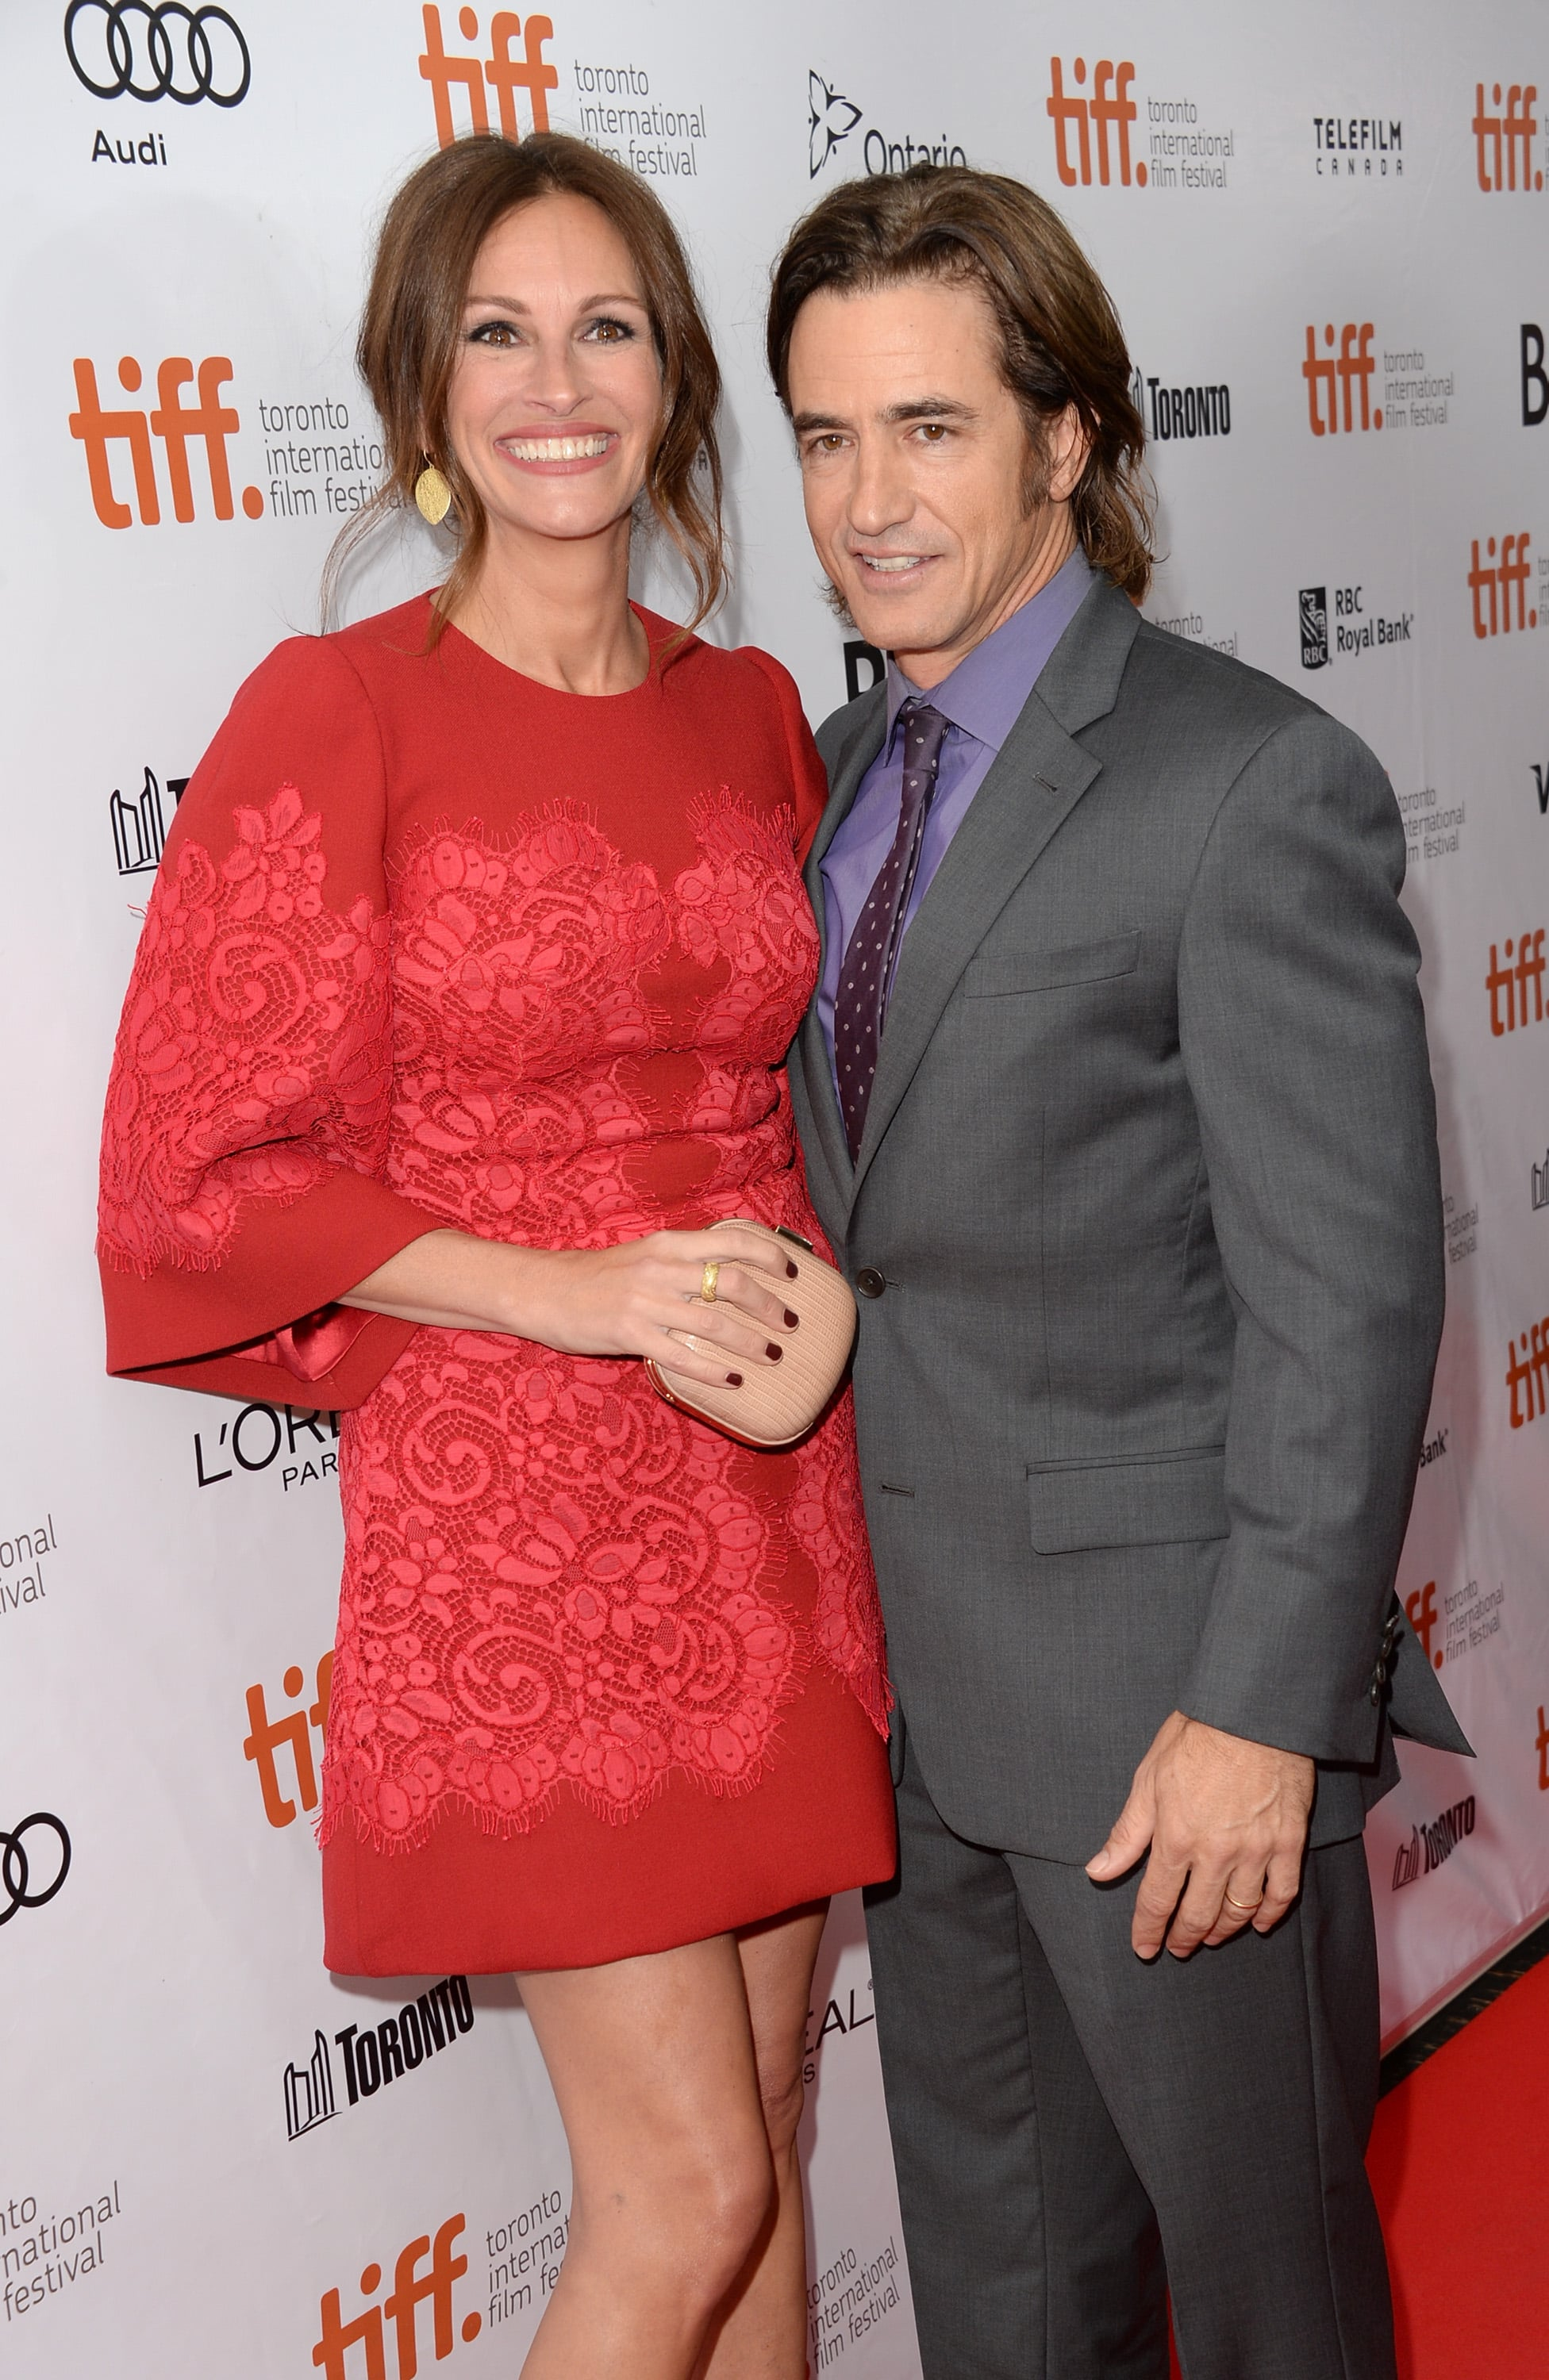 Julia Roberts and Dermot Mulroney posed together at the August: Osage County premiere.